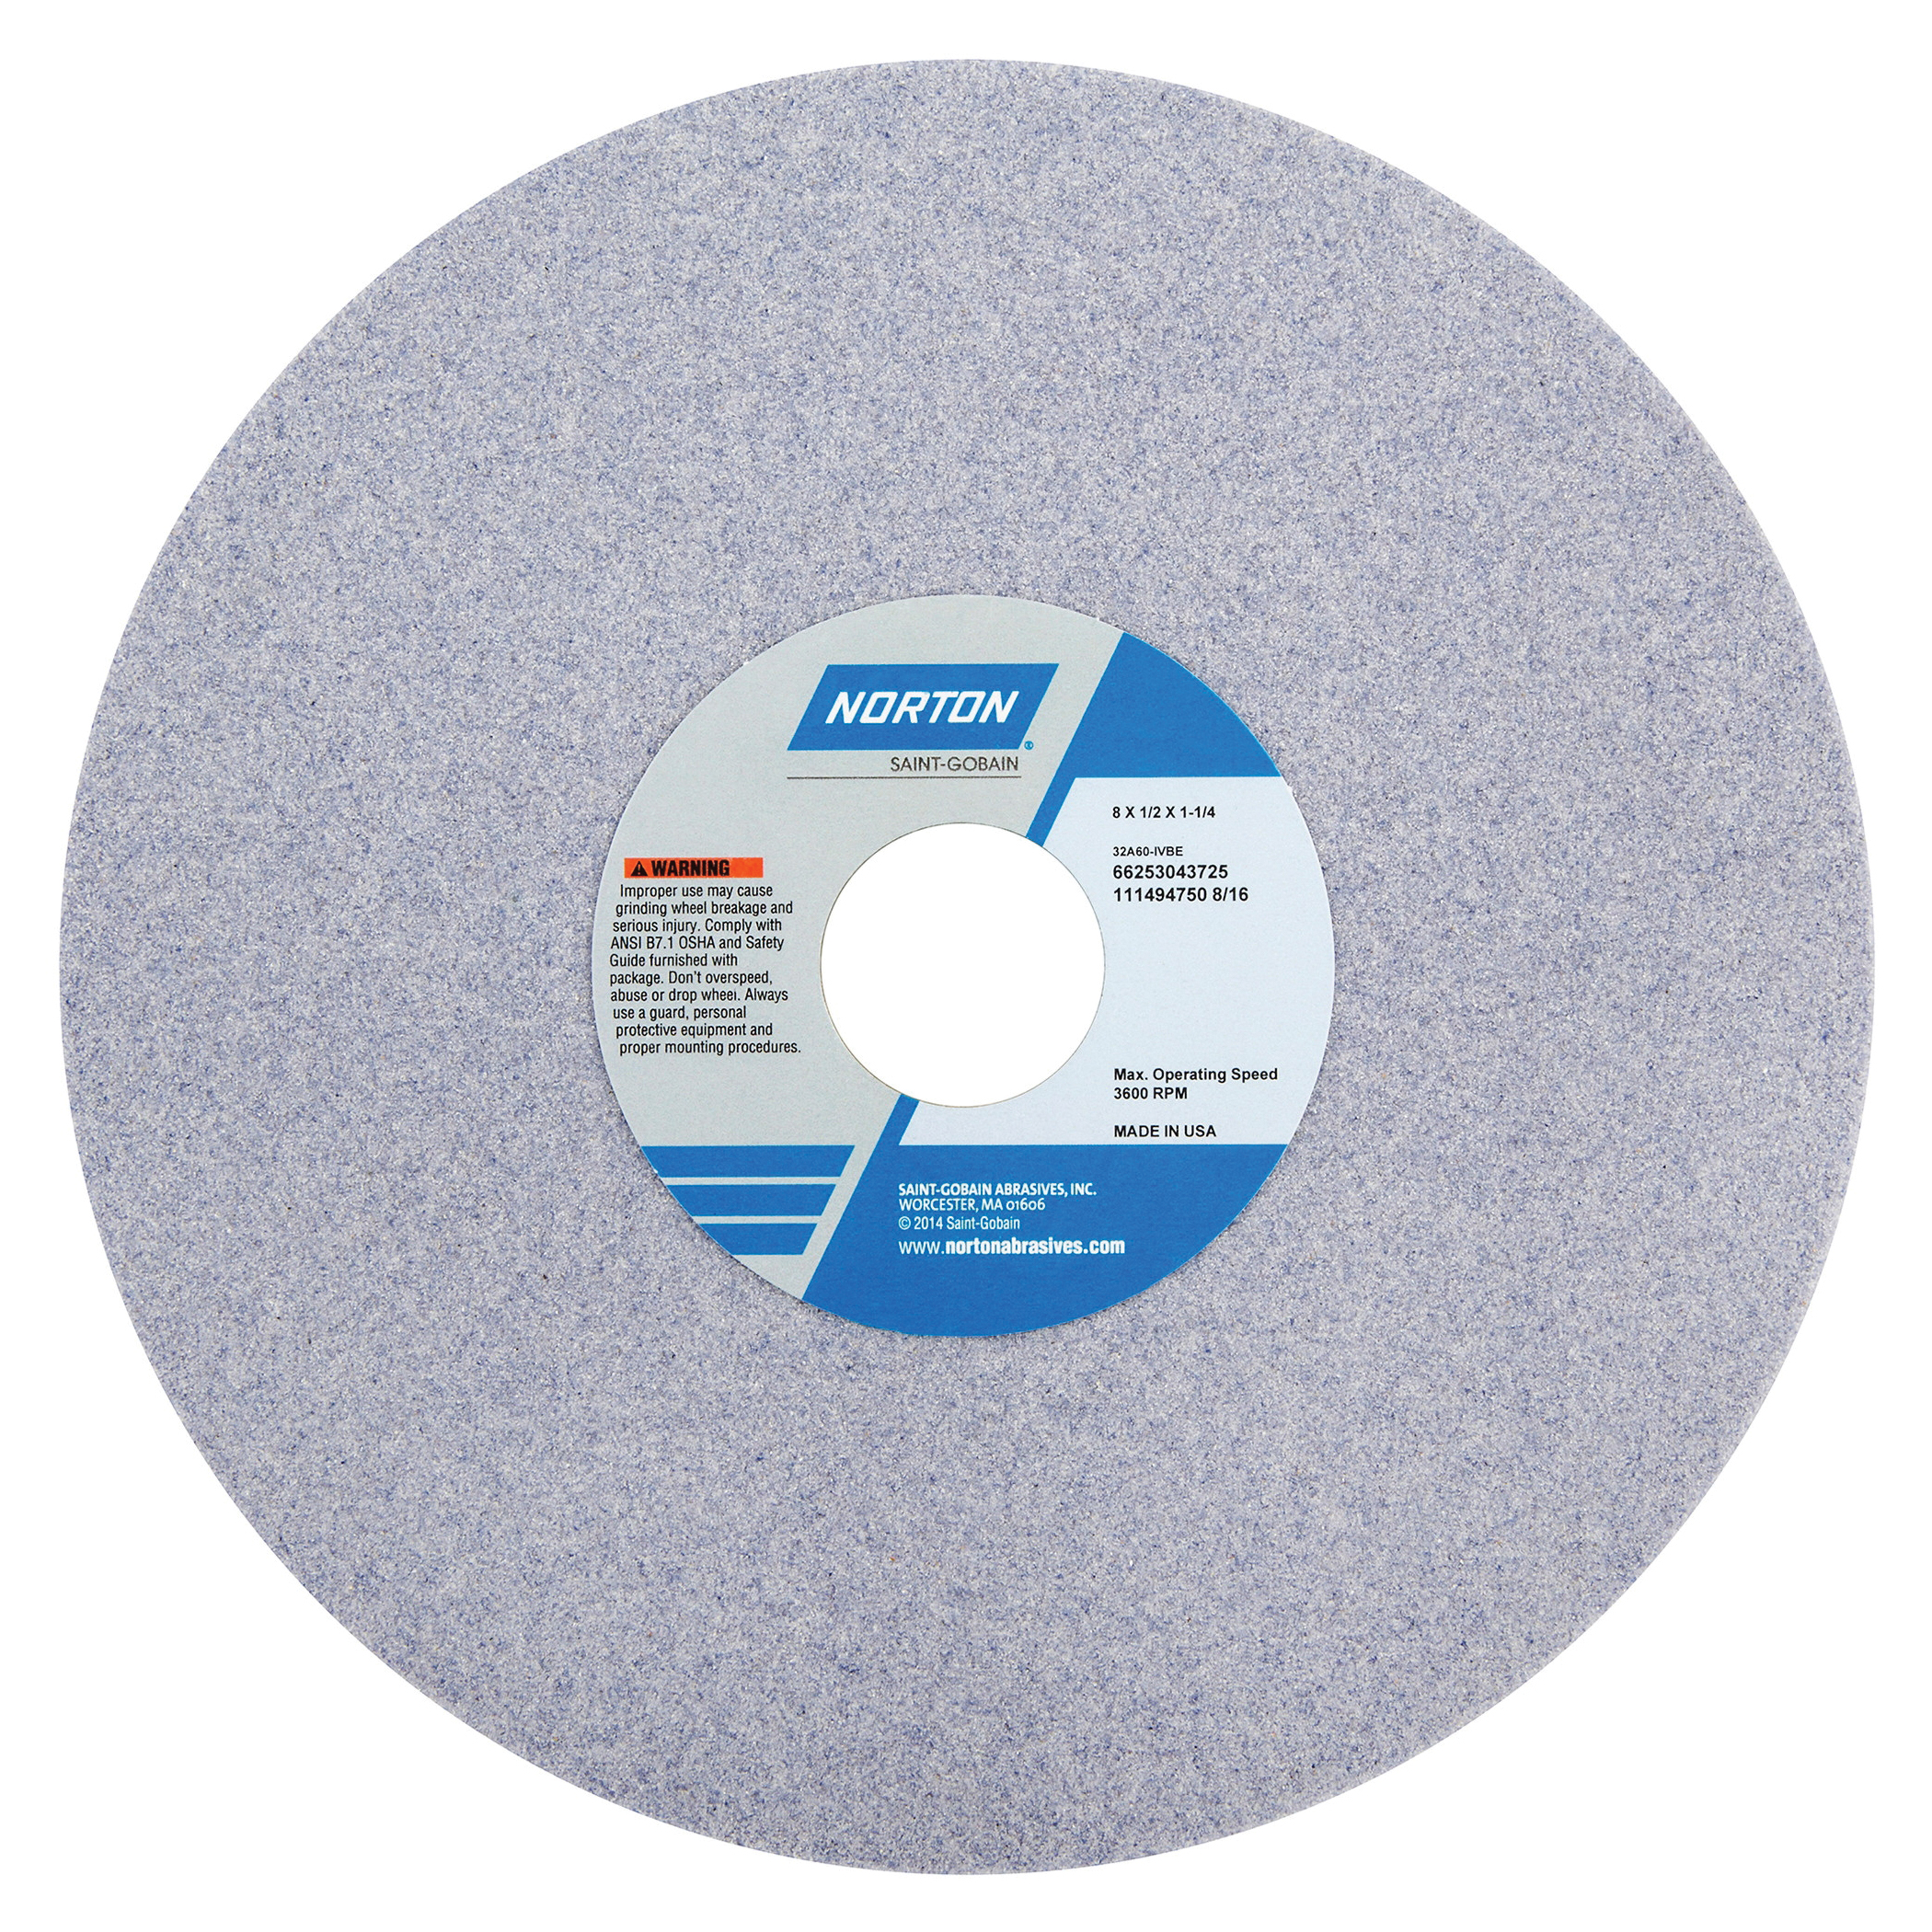 Norton® 66253043716 32A Straight Toolroom Wheel, 8 in Dia x 1/2 in THK, 1-1/4 in Center Hole, 46 Grit, Aluminum Oxide Abrasive